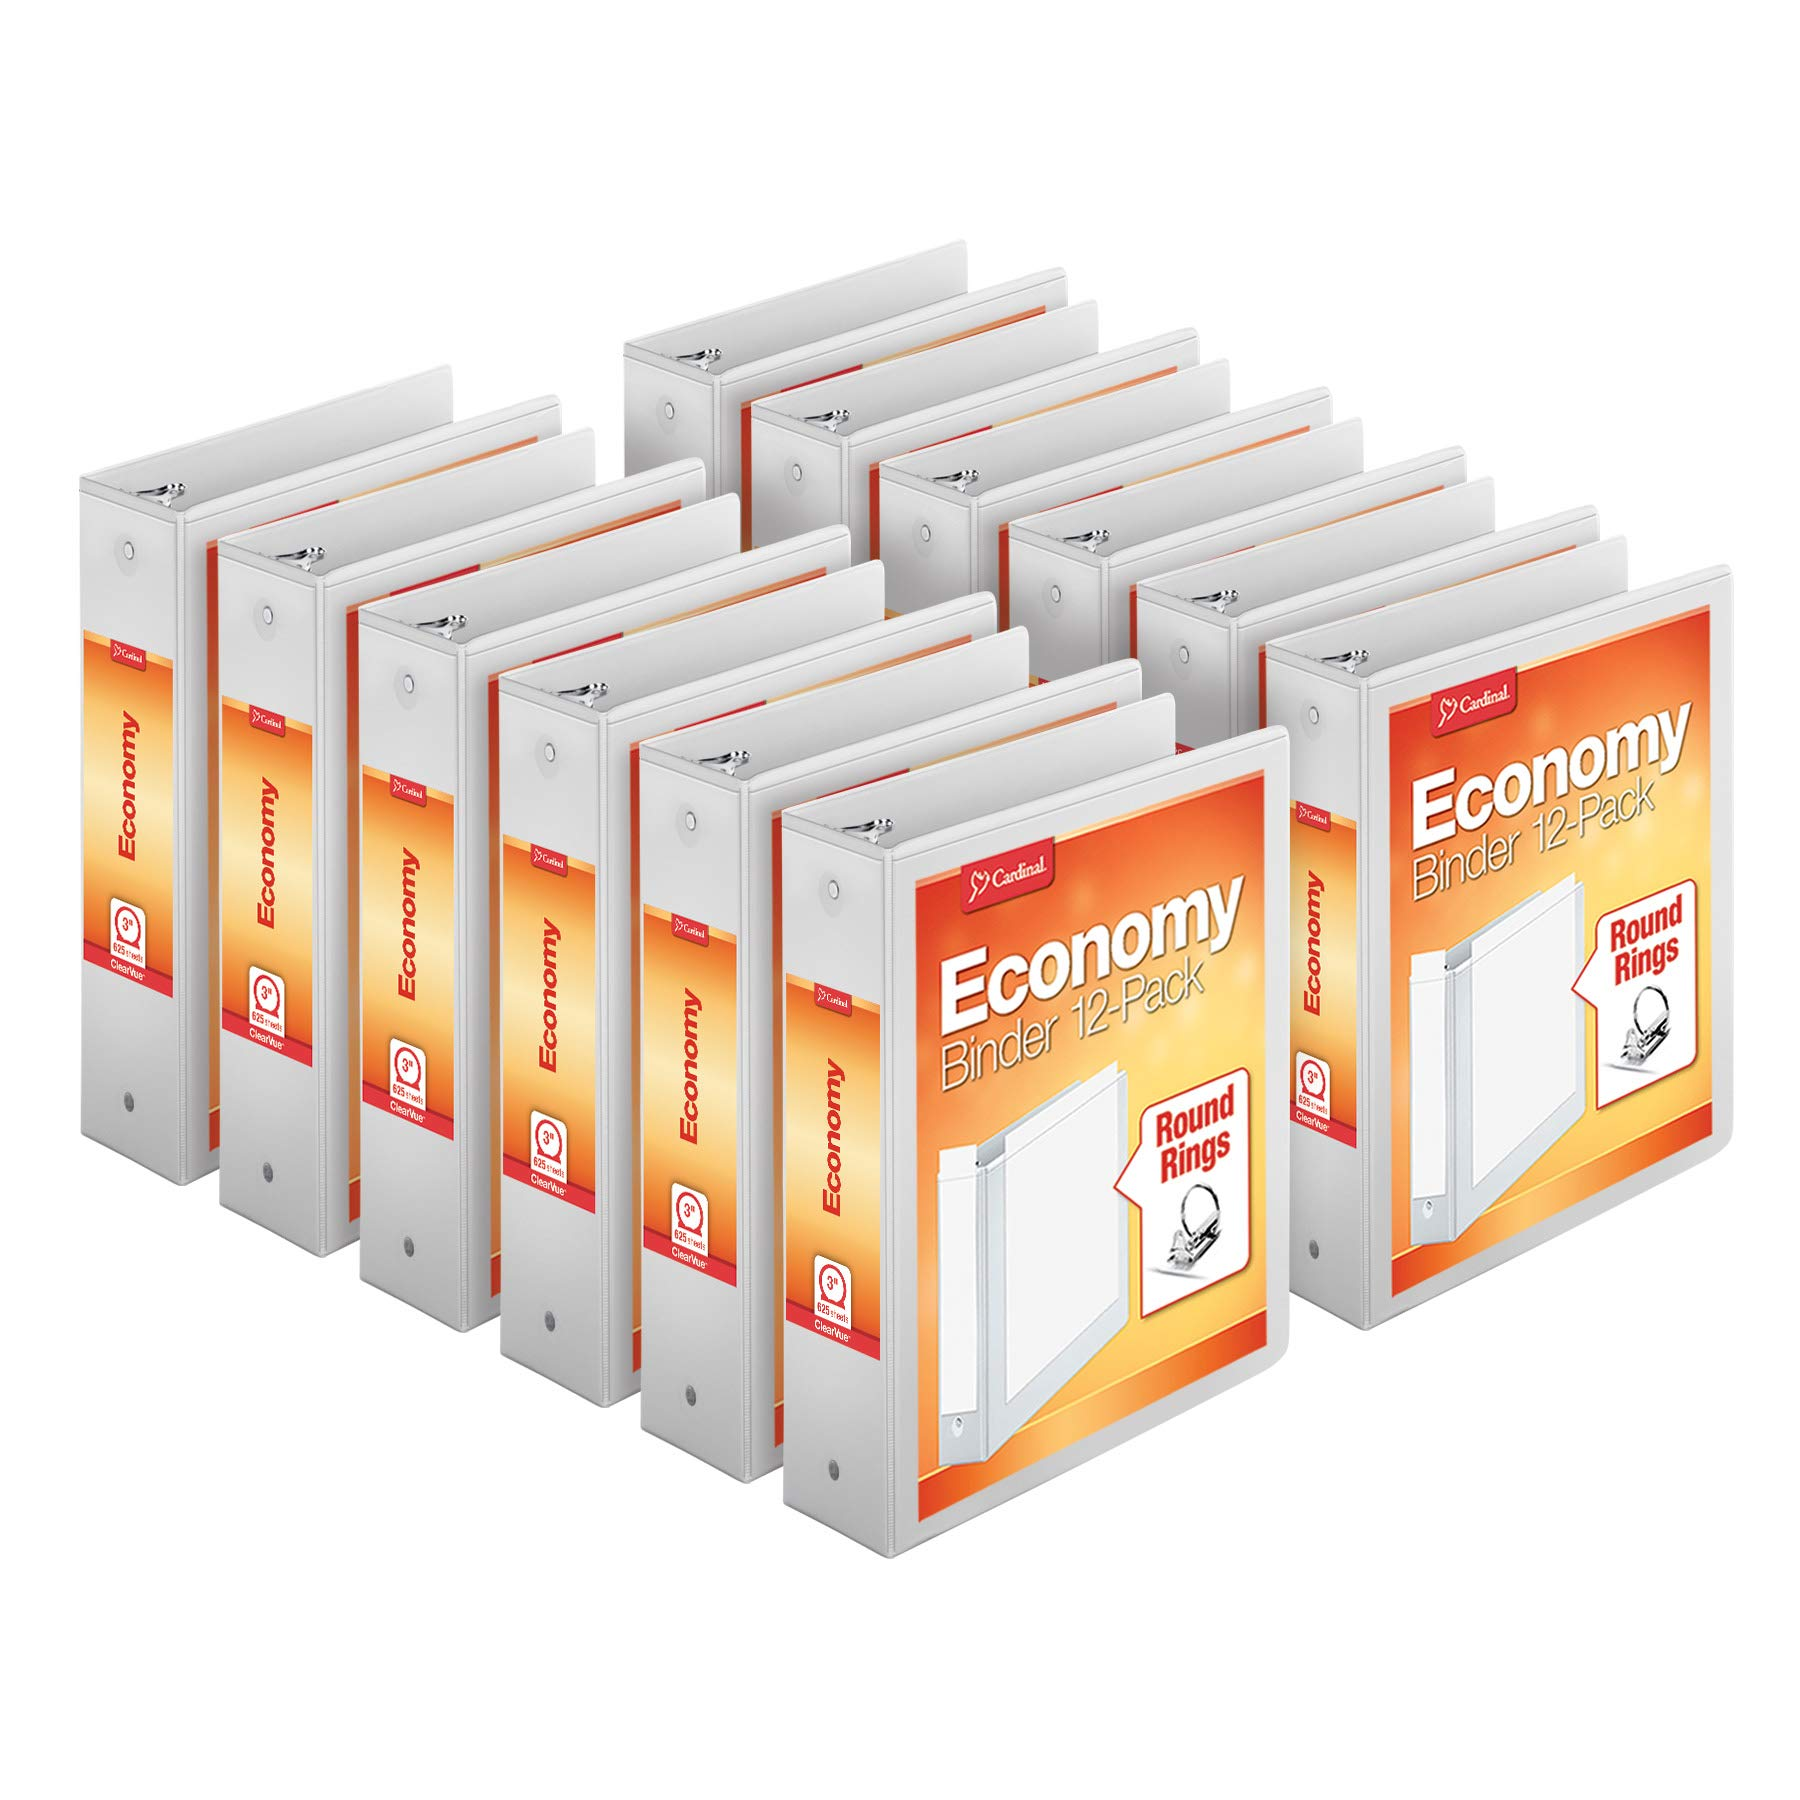 Cardinal Economy 3-Ring Binders, 3'', Round Rings, Holds 625 Sheets, ClearVue Presentation View, Non-Stick, White, Carton of 12 (90651) by Cardinal (Image #1)